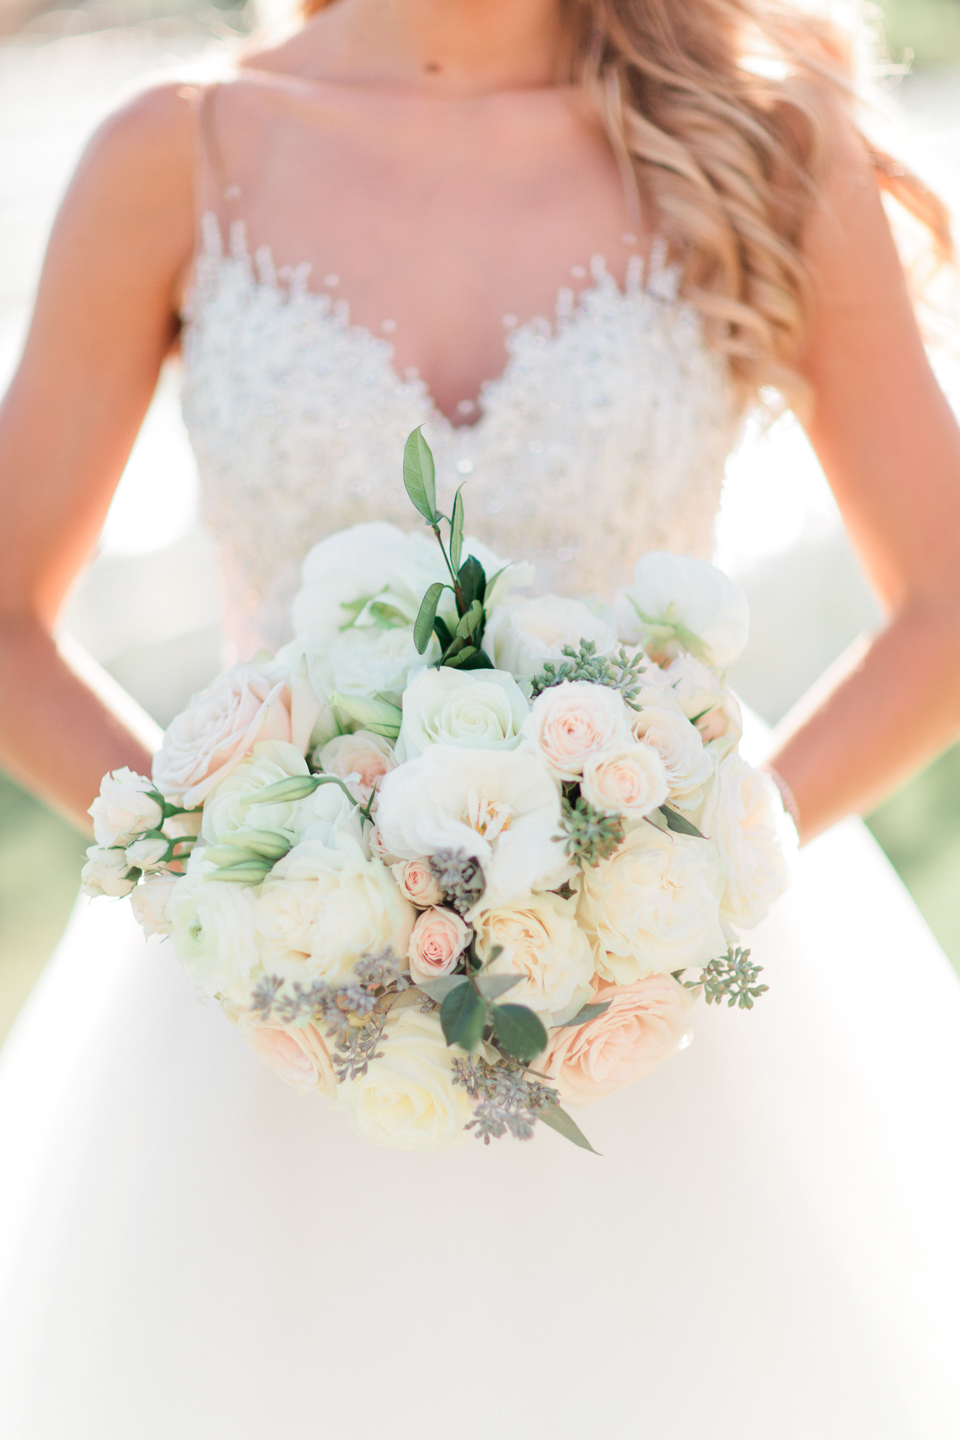 Image of a bride holding her bridal bouquet with white blossoms at TPC Sawgrass in Ponte Vedra, Florida